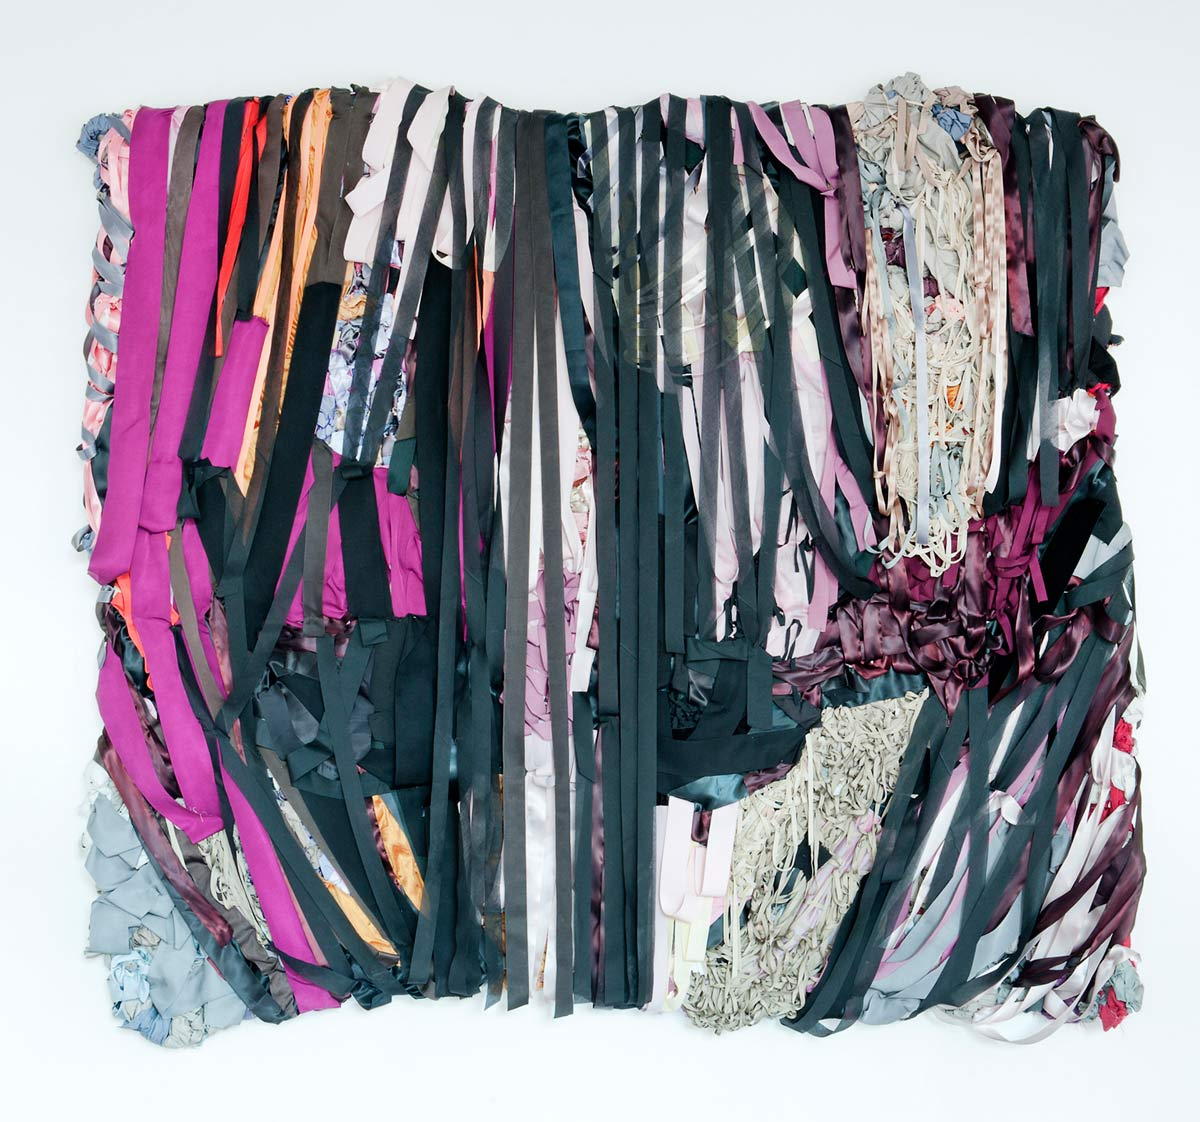 Storm, 7ft x 7ft x 5in, fabric, ribbon, mixed media, 2013